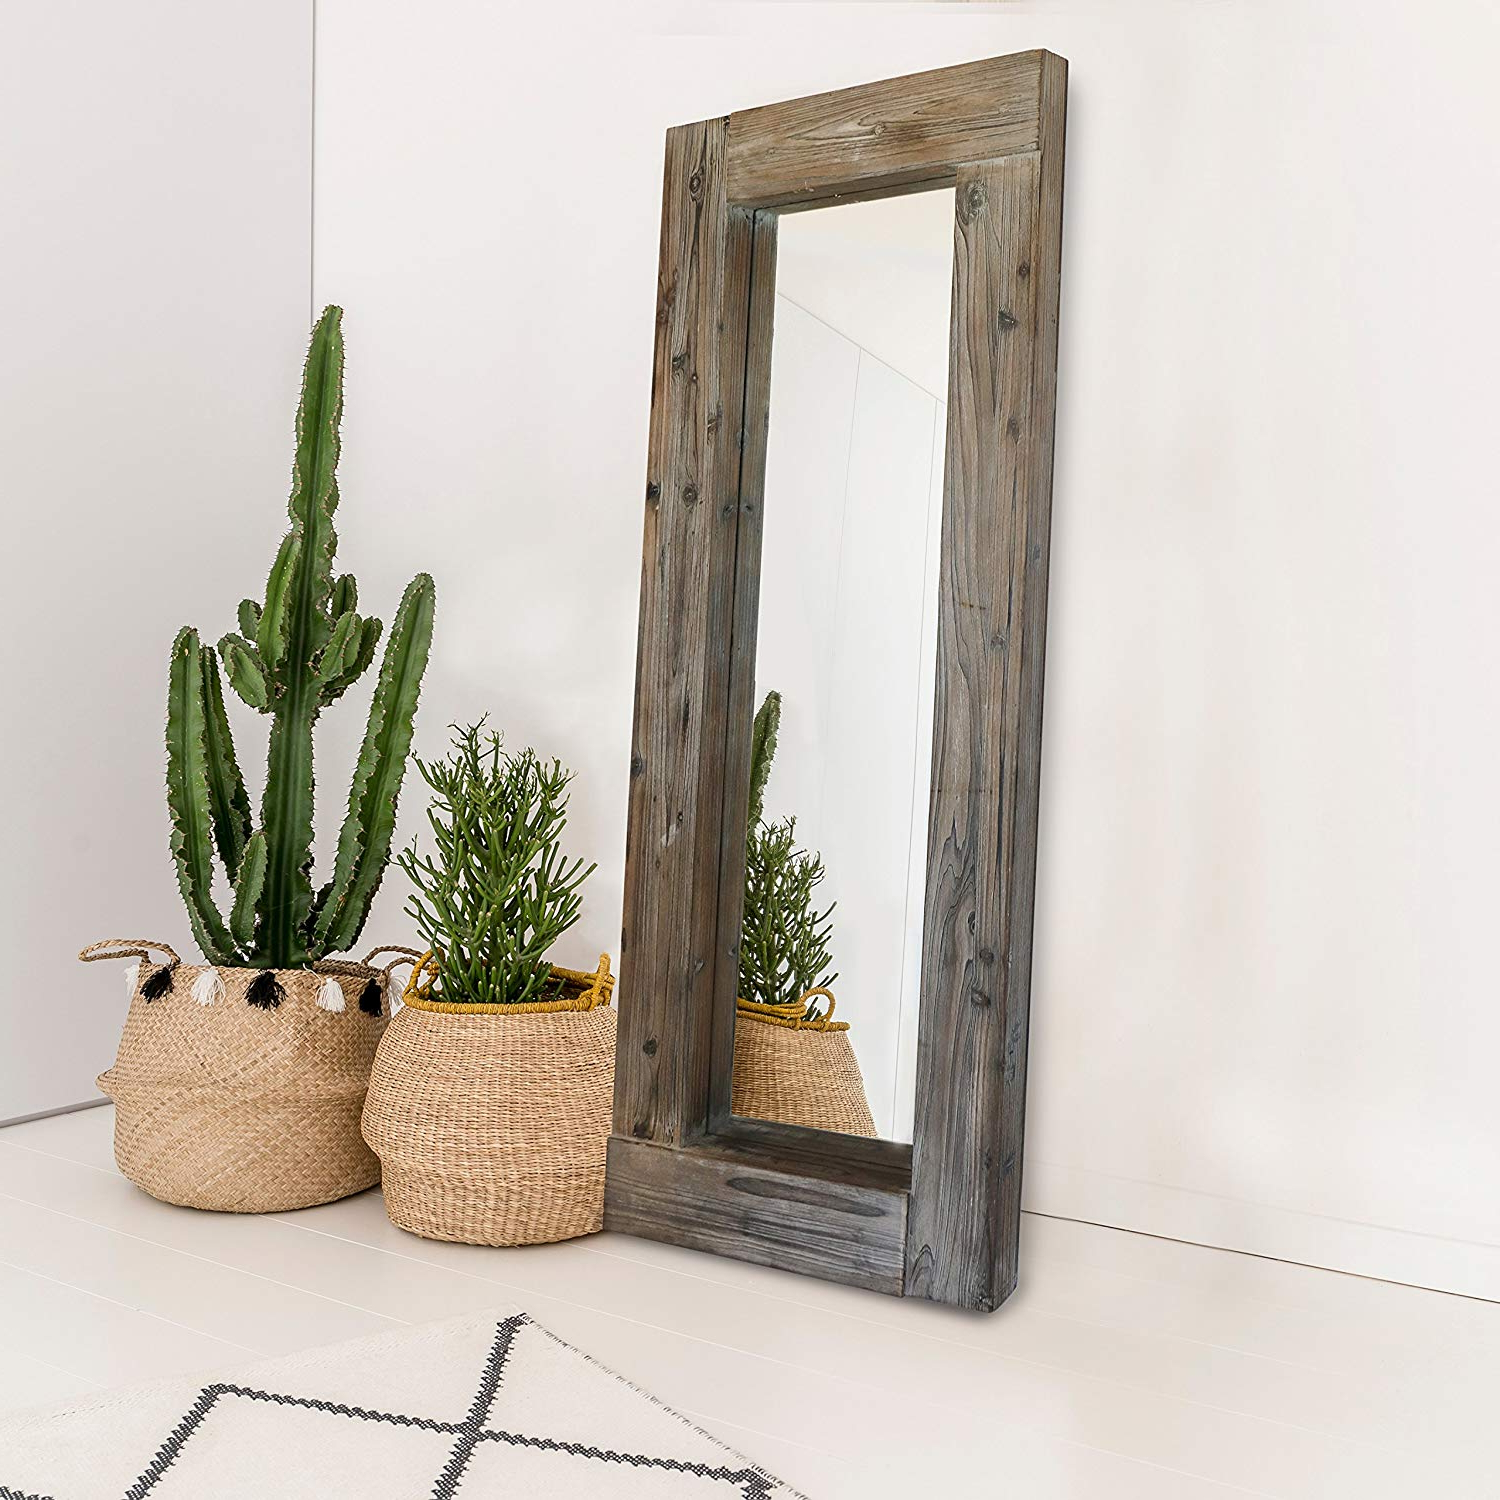 """Barnyard Designs Long Decorative Wall Mirror, Rustic Distressed Unfinished Wood Frame, Vertical And Horizontal Hanging Mirror Wall Decor 58"""" X 24"""" Pertaining To Widely Used Horizontal Decorative Wall Mirrors (View 8 of 20)"""